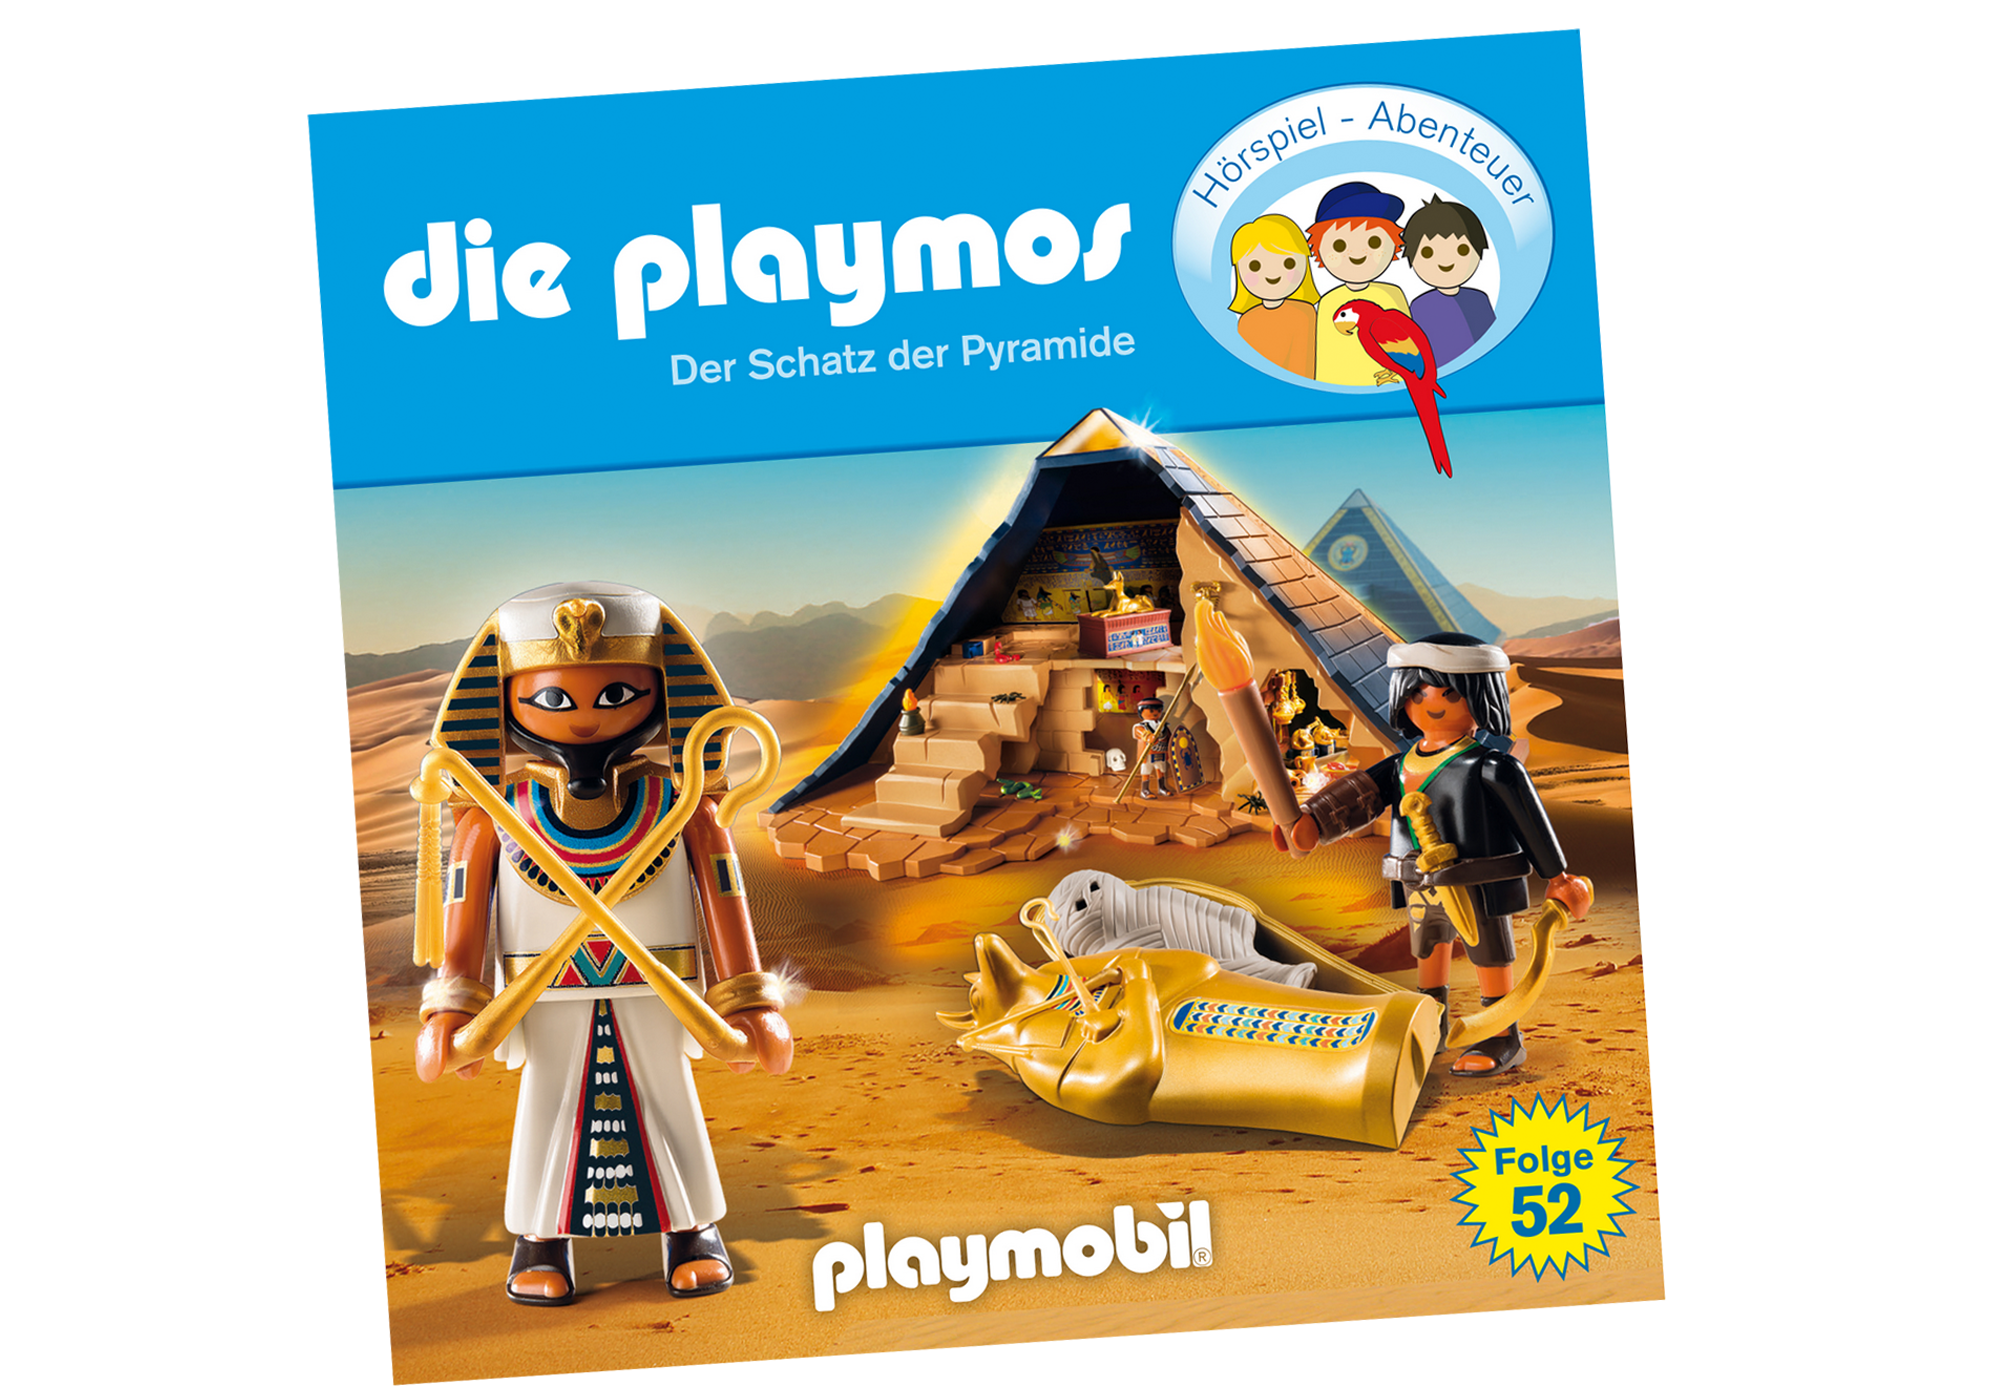 http://media.playmobil.com/i/playmobil/80259_product_detail